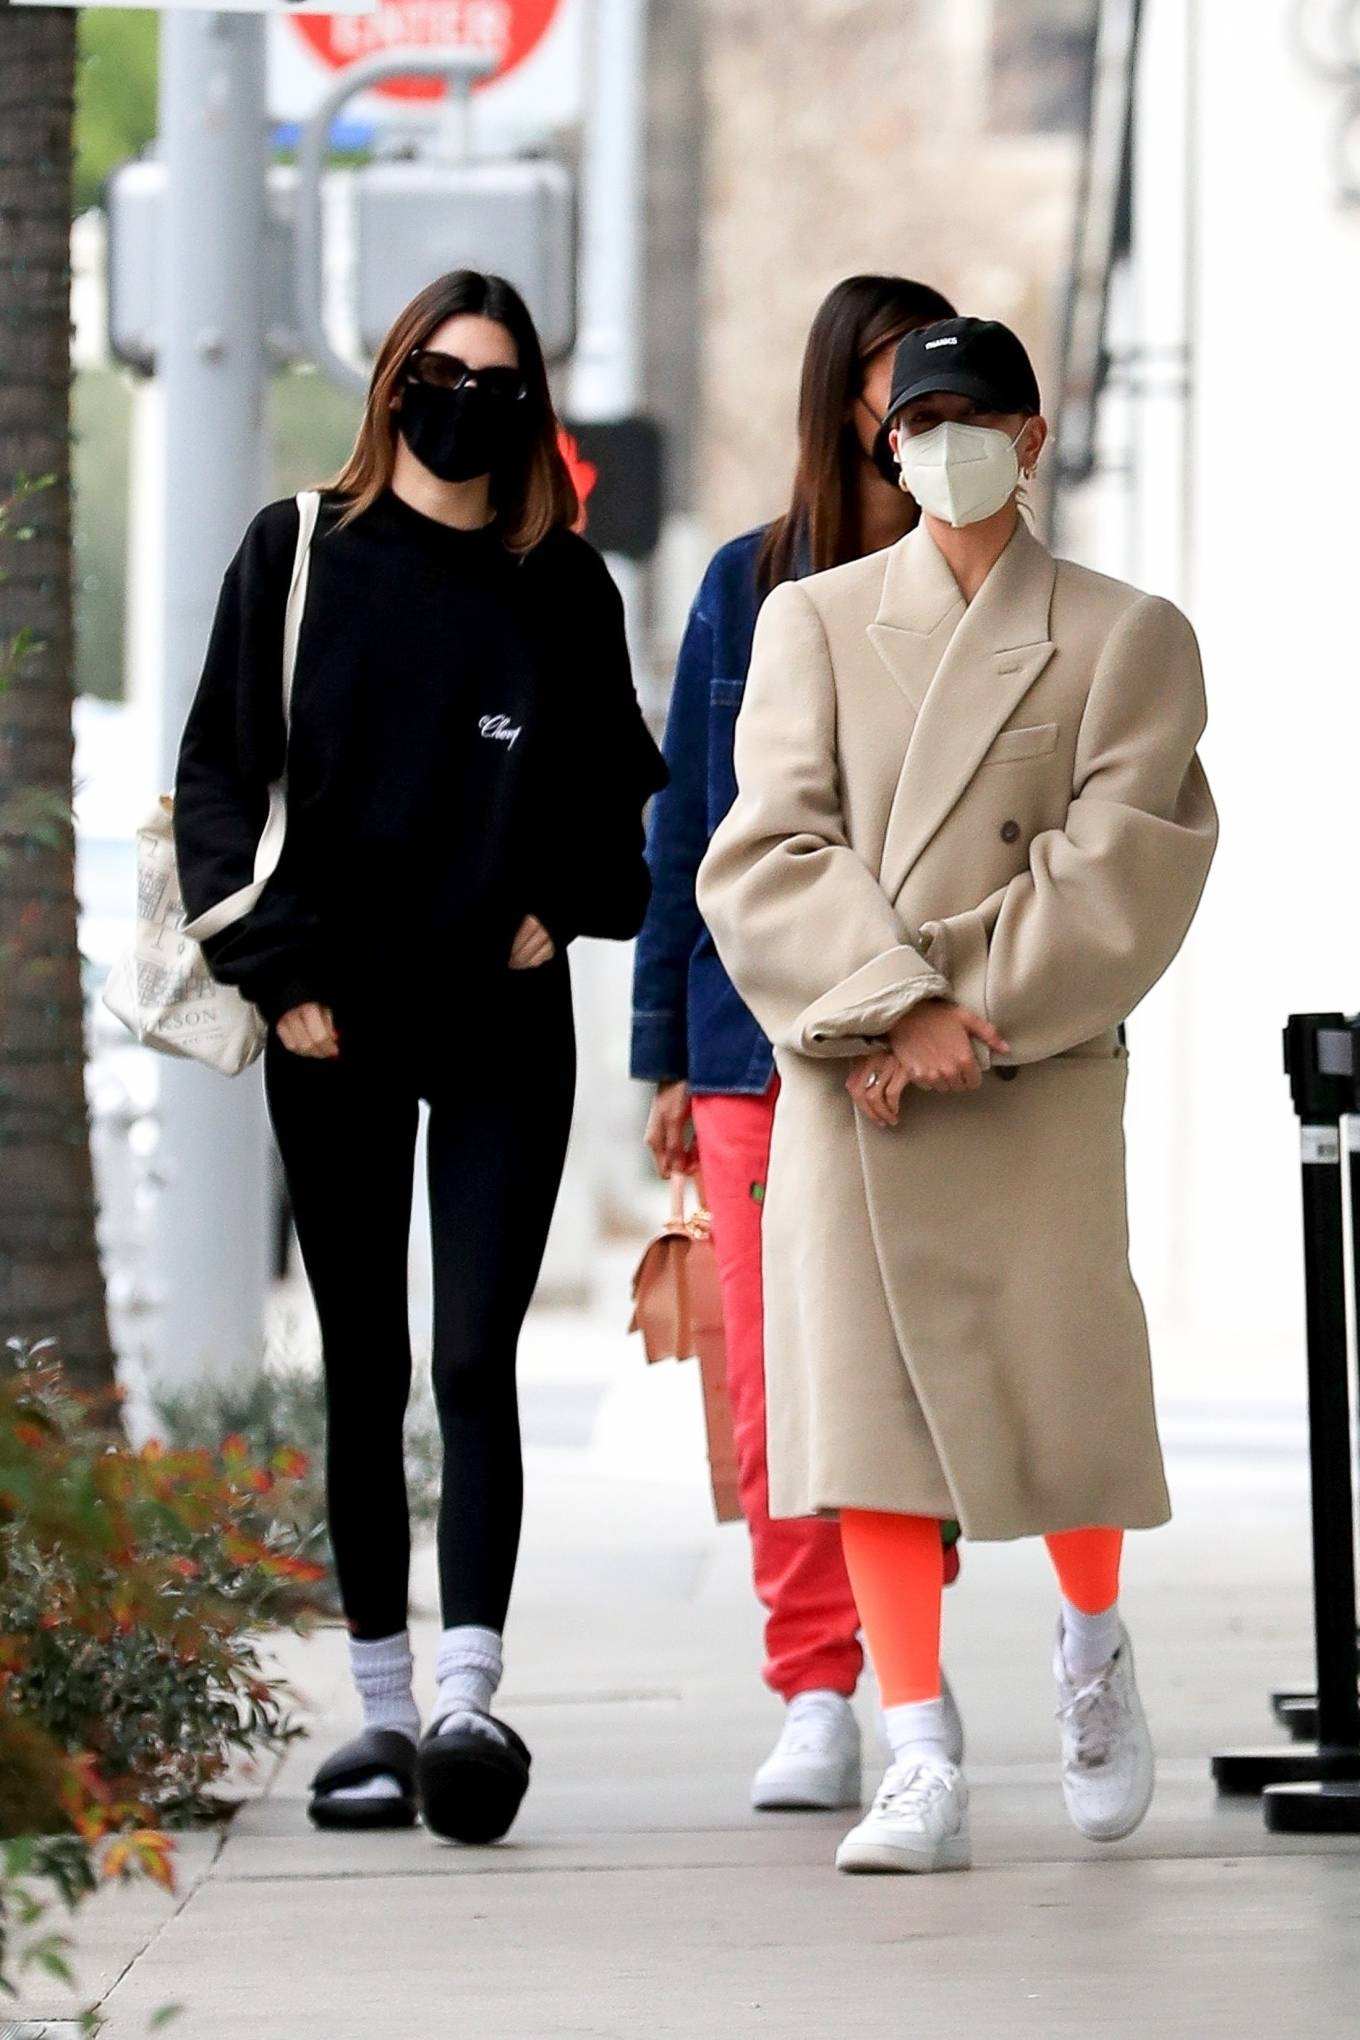 Kendall Jenner donning a Oversized black Cherry sweatshirt with full sleeves and ribbed hem